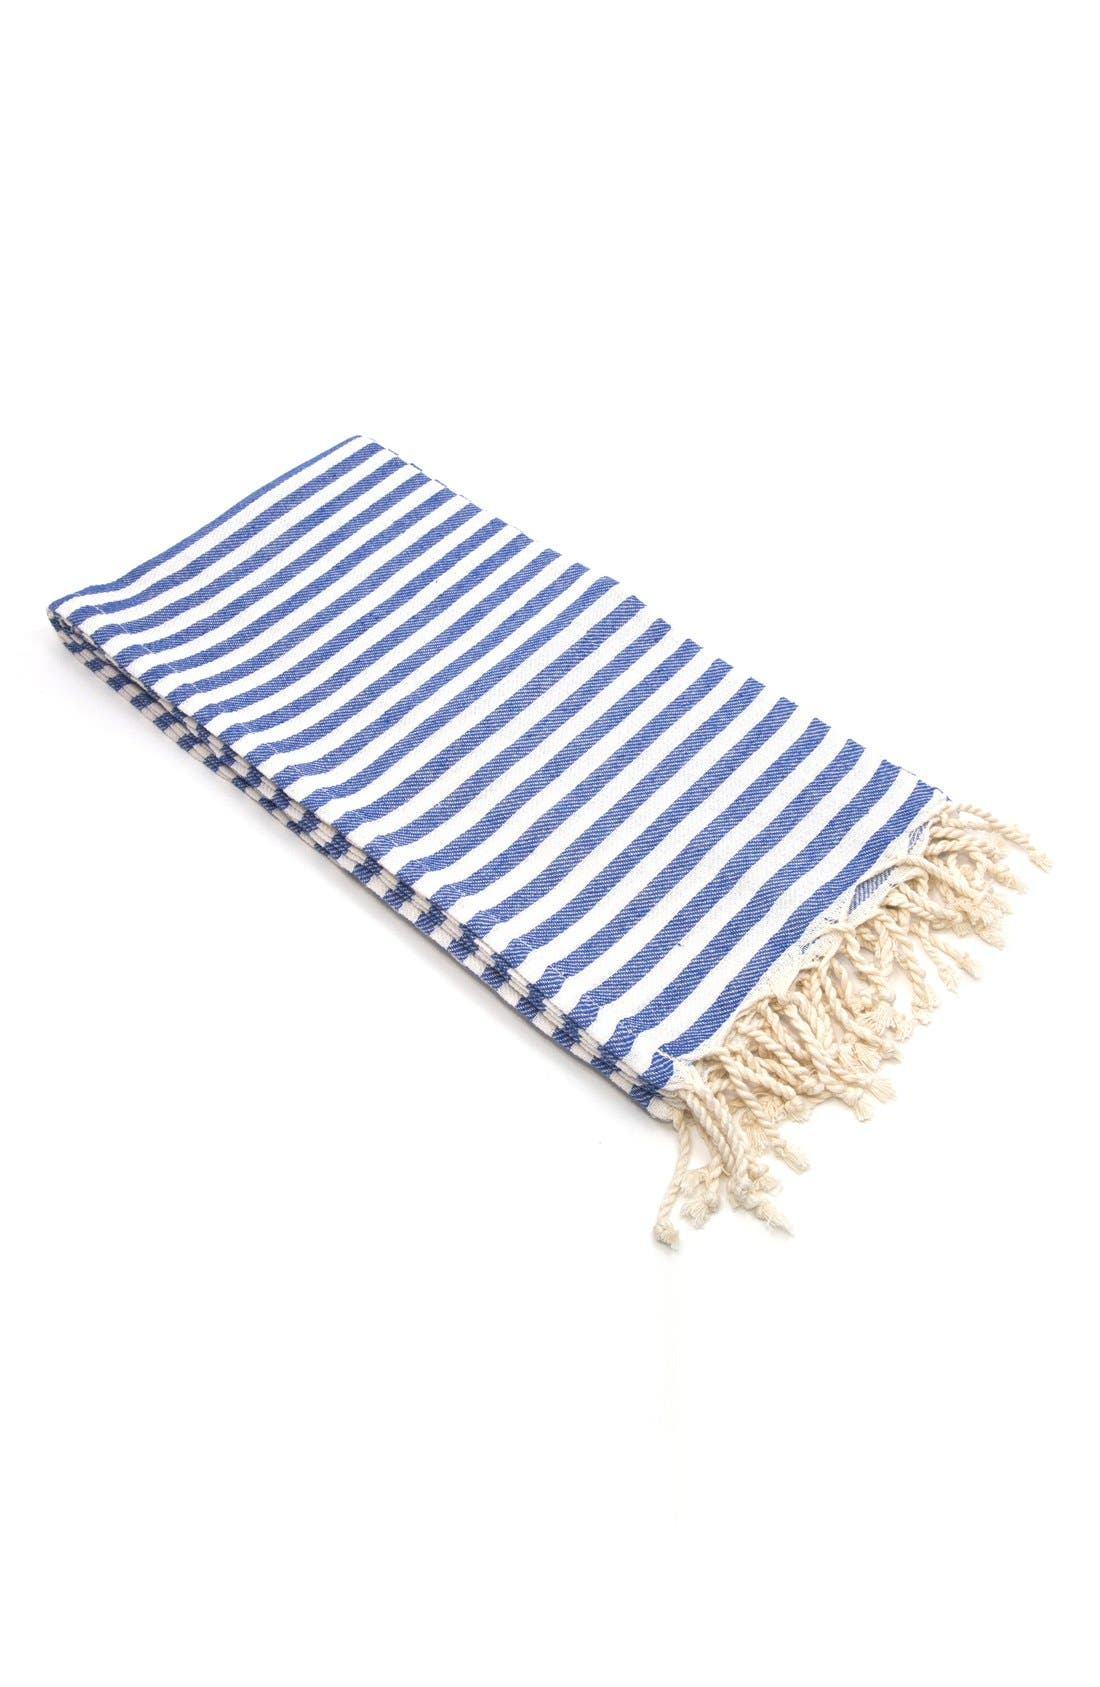 LINUM HOME TEXTILES,                             'Fun in the Sun' Turkish Pestemal Towel,                             Main thumbnail 1, color,                             OCEAN BLUE